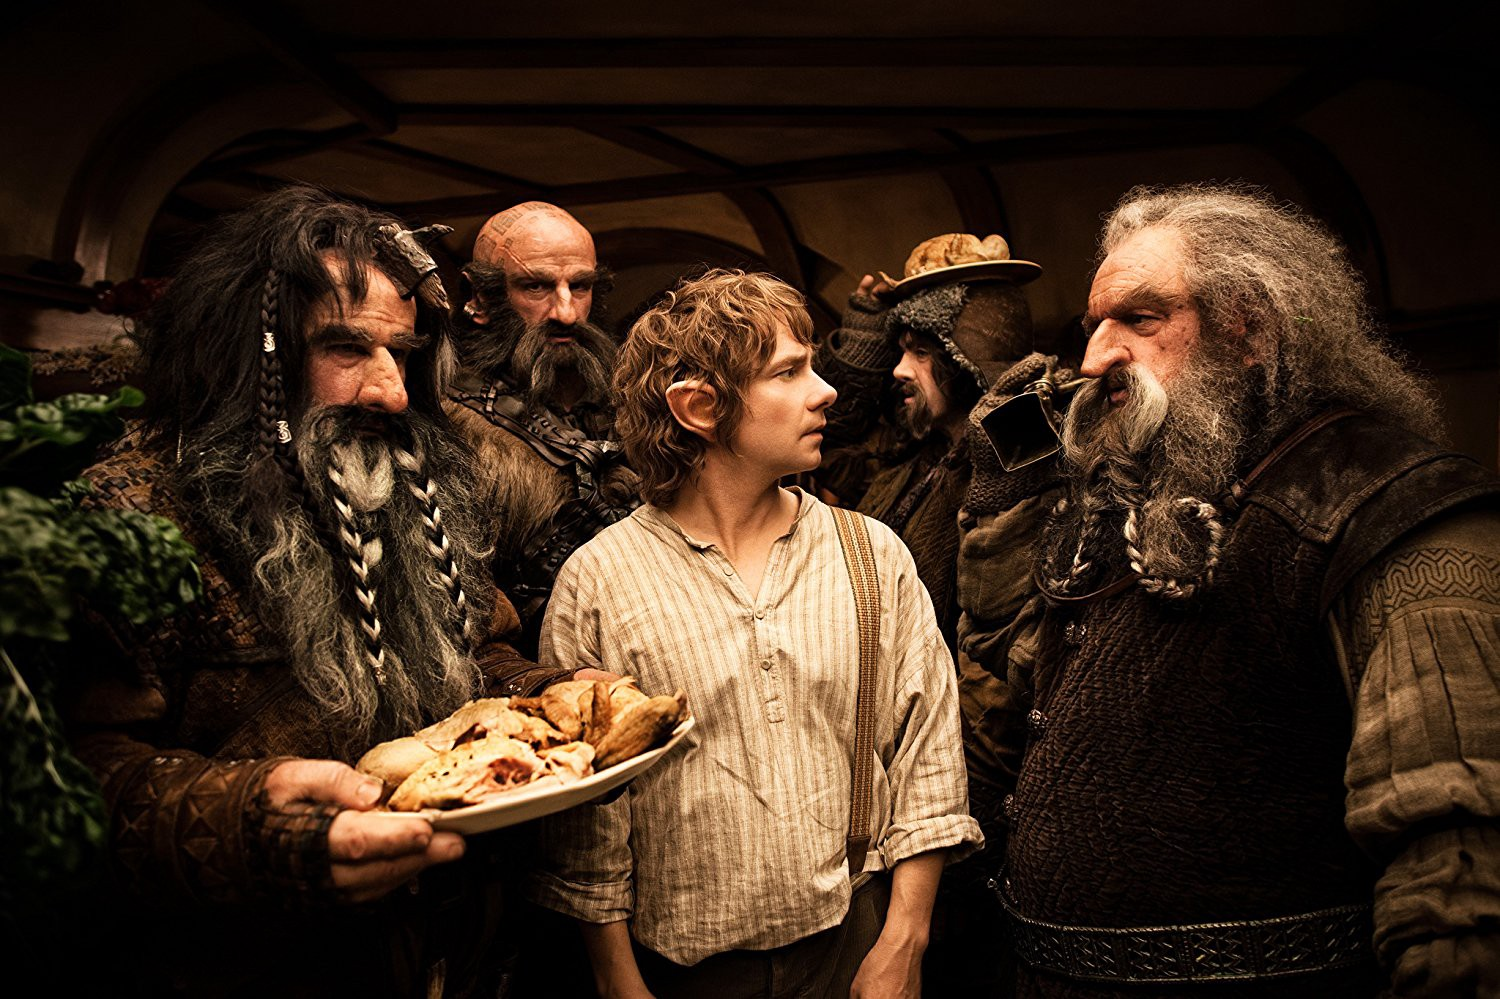 I went to a Lord of the Rings and Hobbit movie Marathon, forgot which planet I lived in